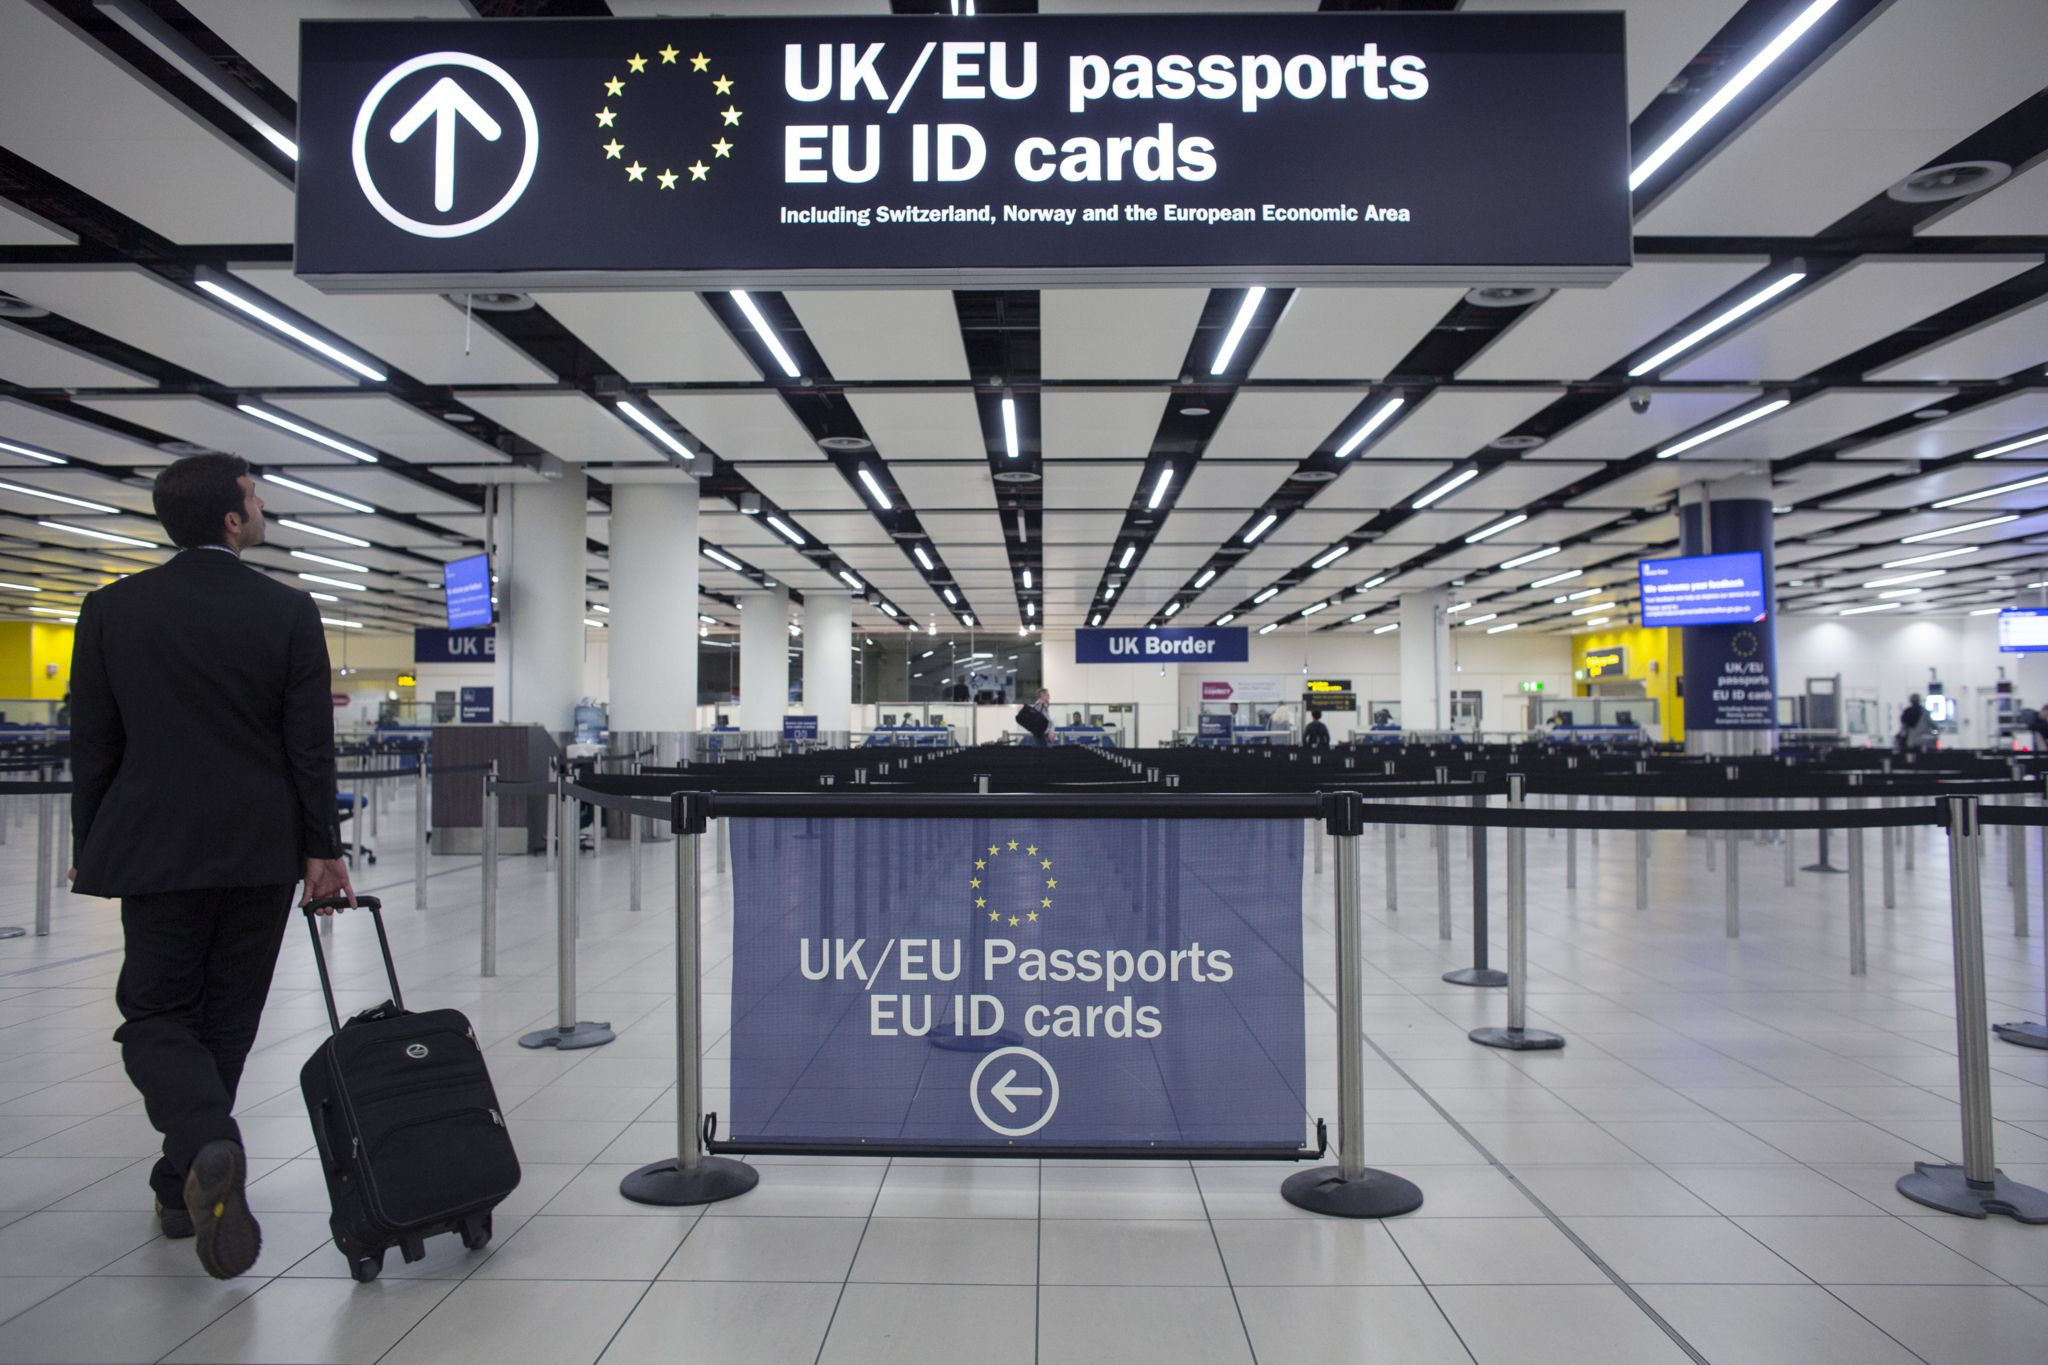 Photo showing EU citizen entering the appropriate airport queue